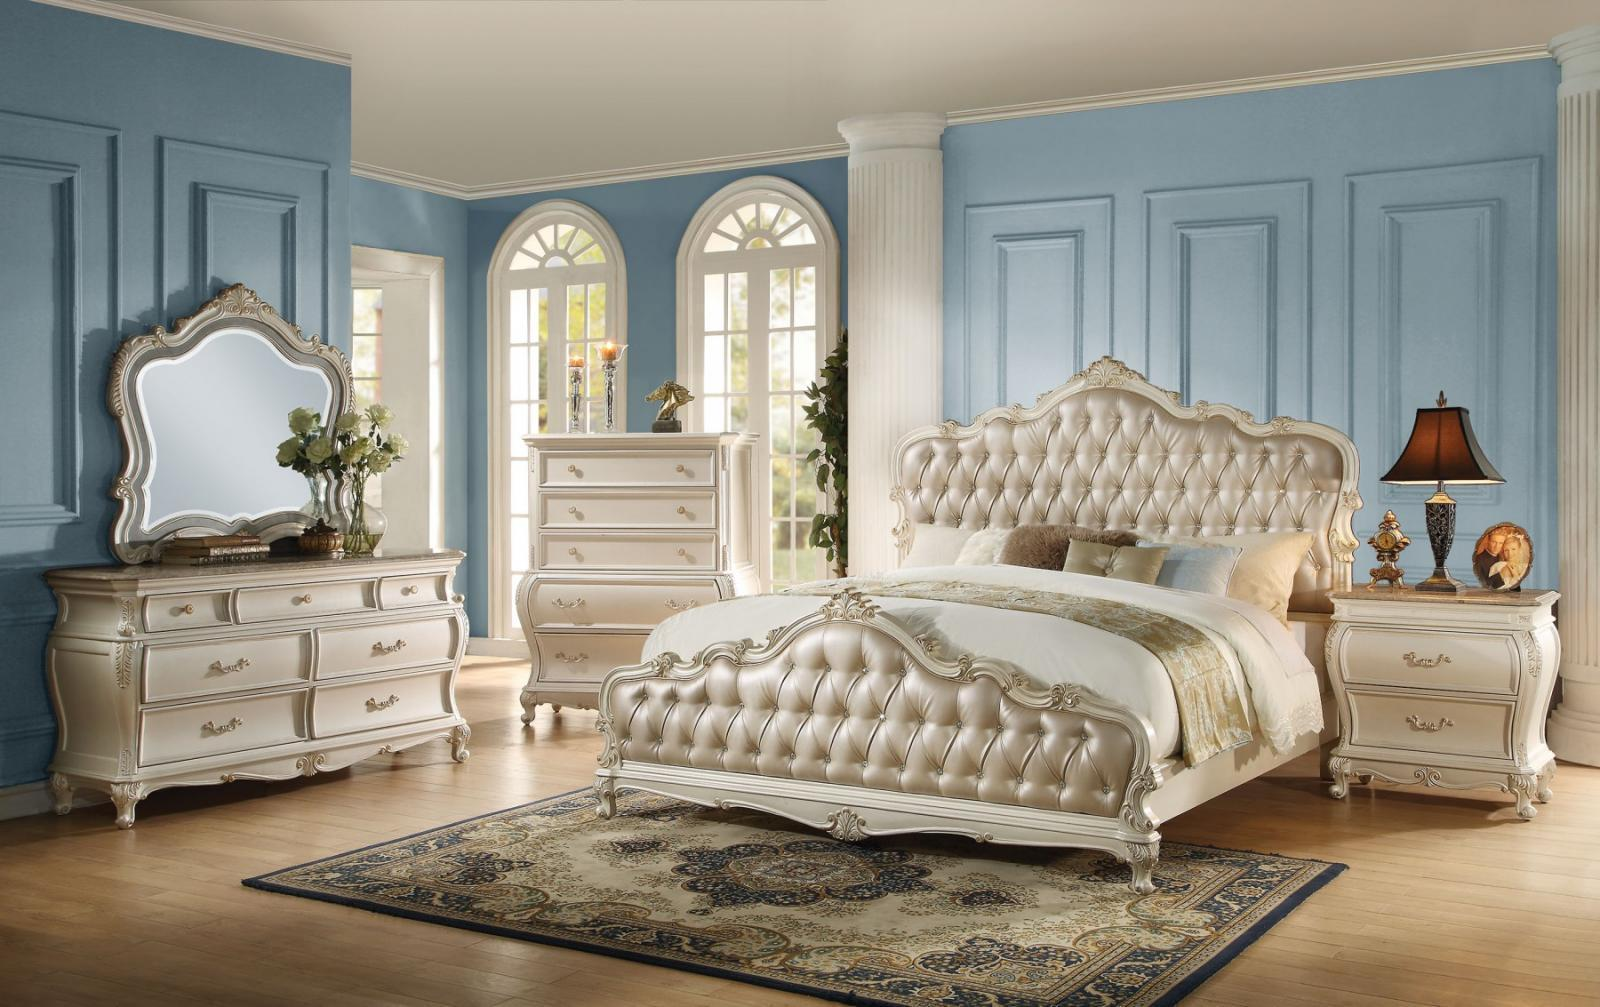 Acme Chantelle 23537EK  White KING Bedroom Set  Classic 4-pcs